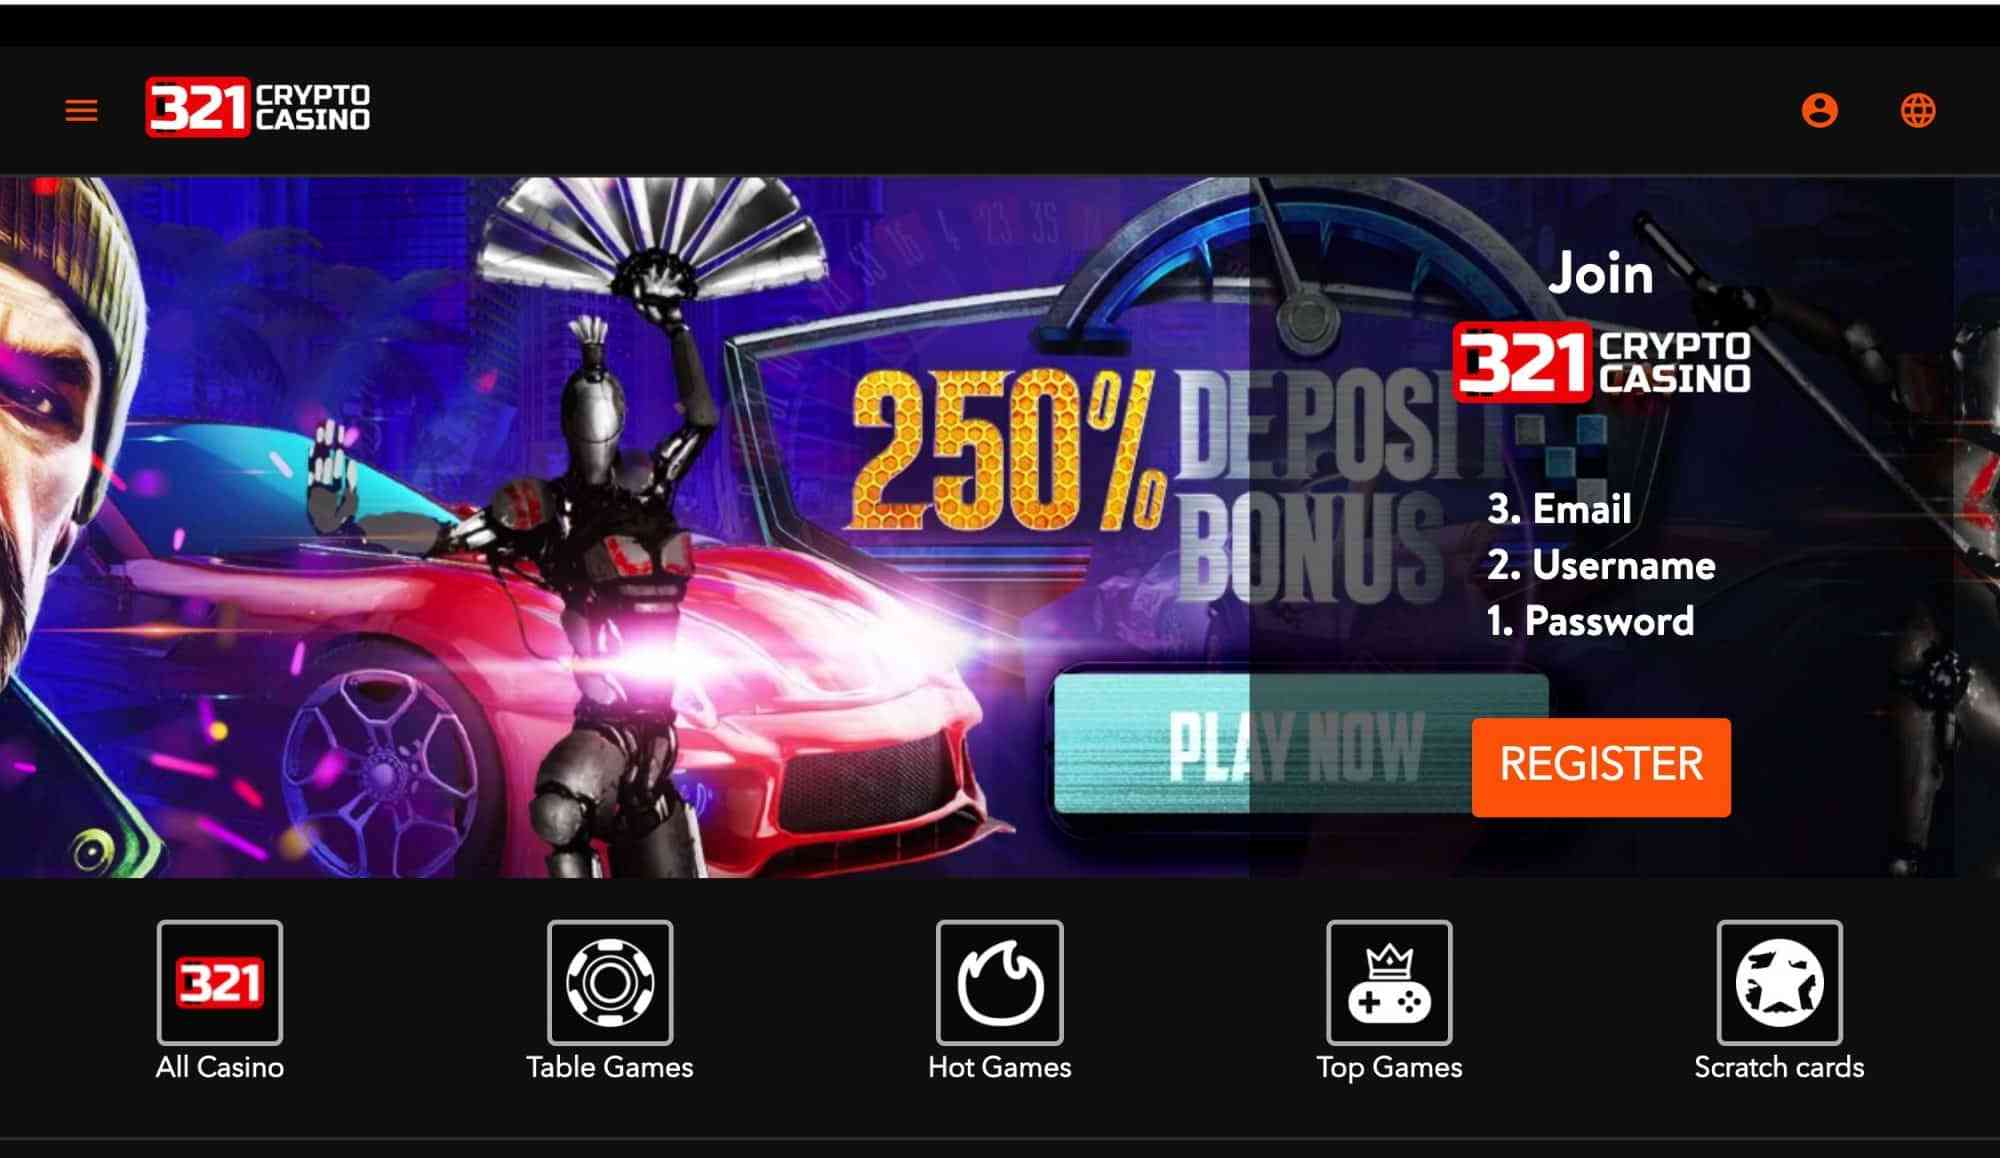 321 crypto casino review promo code: BONUS250 to receive 250% match bonus on your first 3 deposits! PLUS get 321 crypto casino no deposit bonuses during the week!